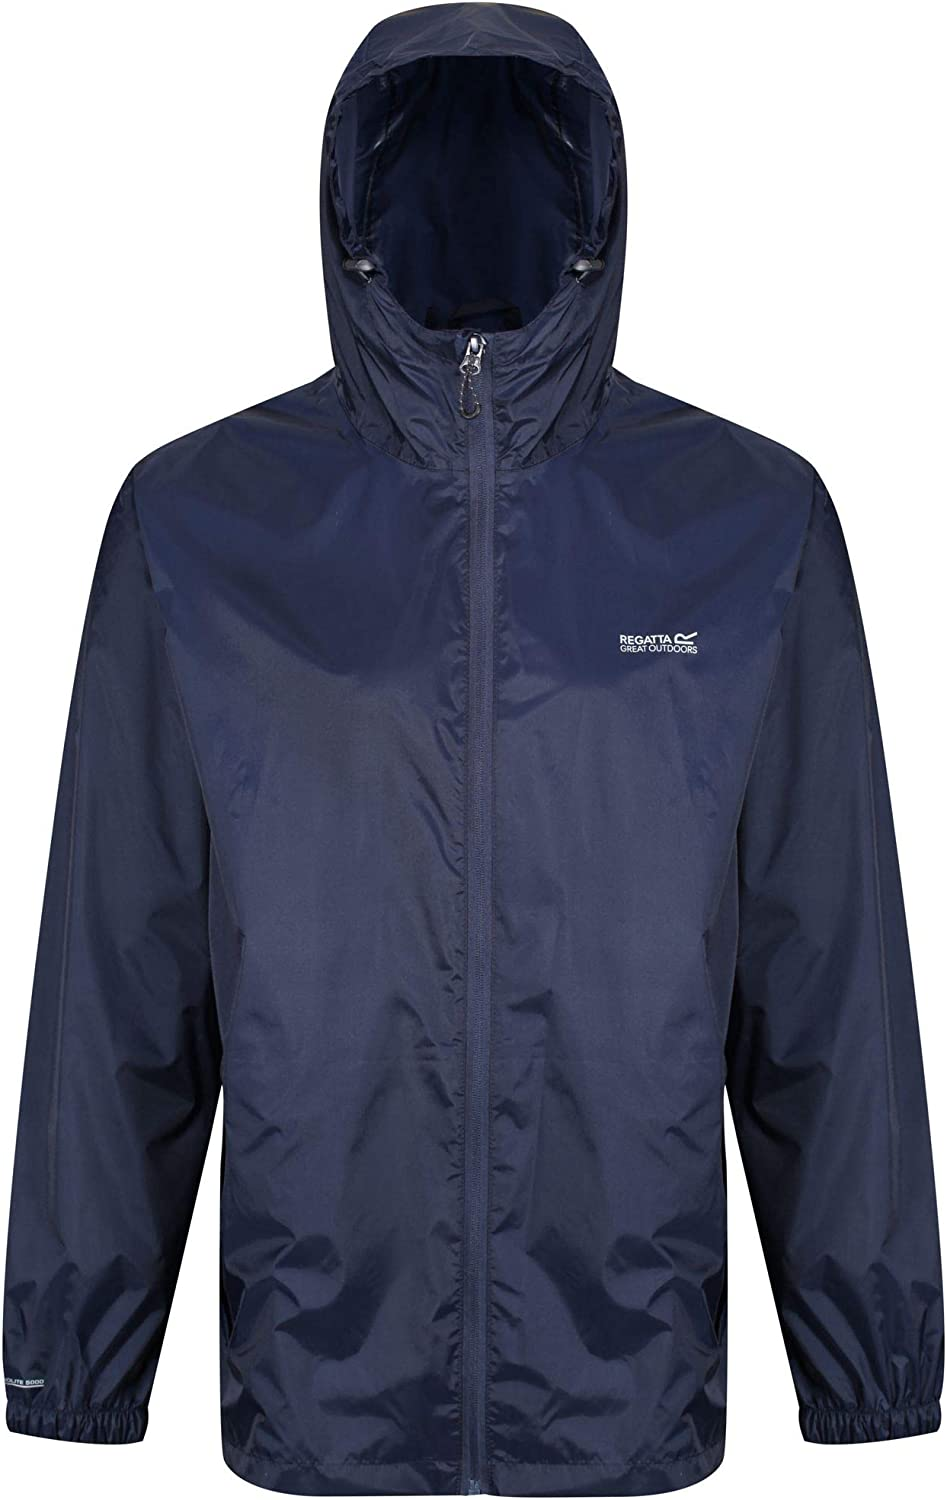 Spring new work one after another Regatta Denver Mall Pack-It III Waterproof Jacket